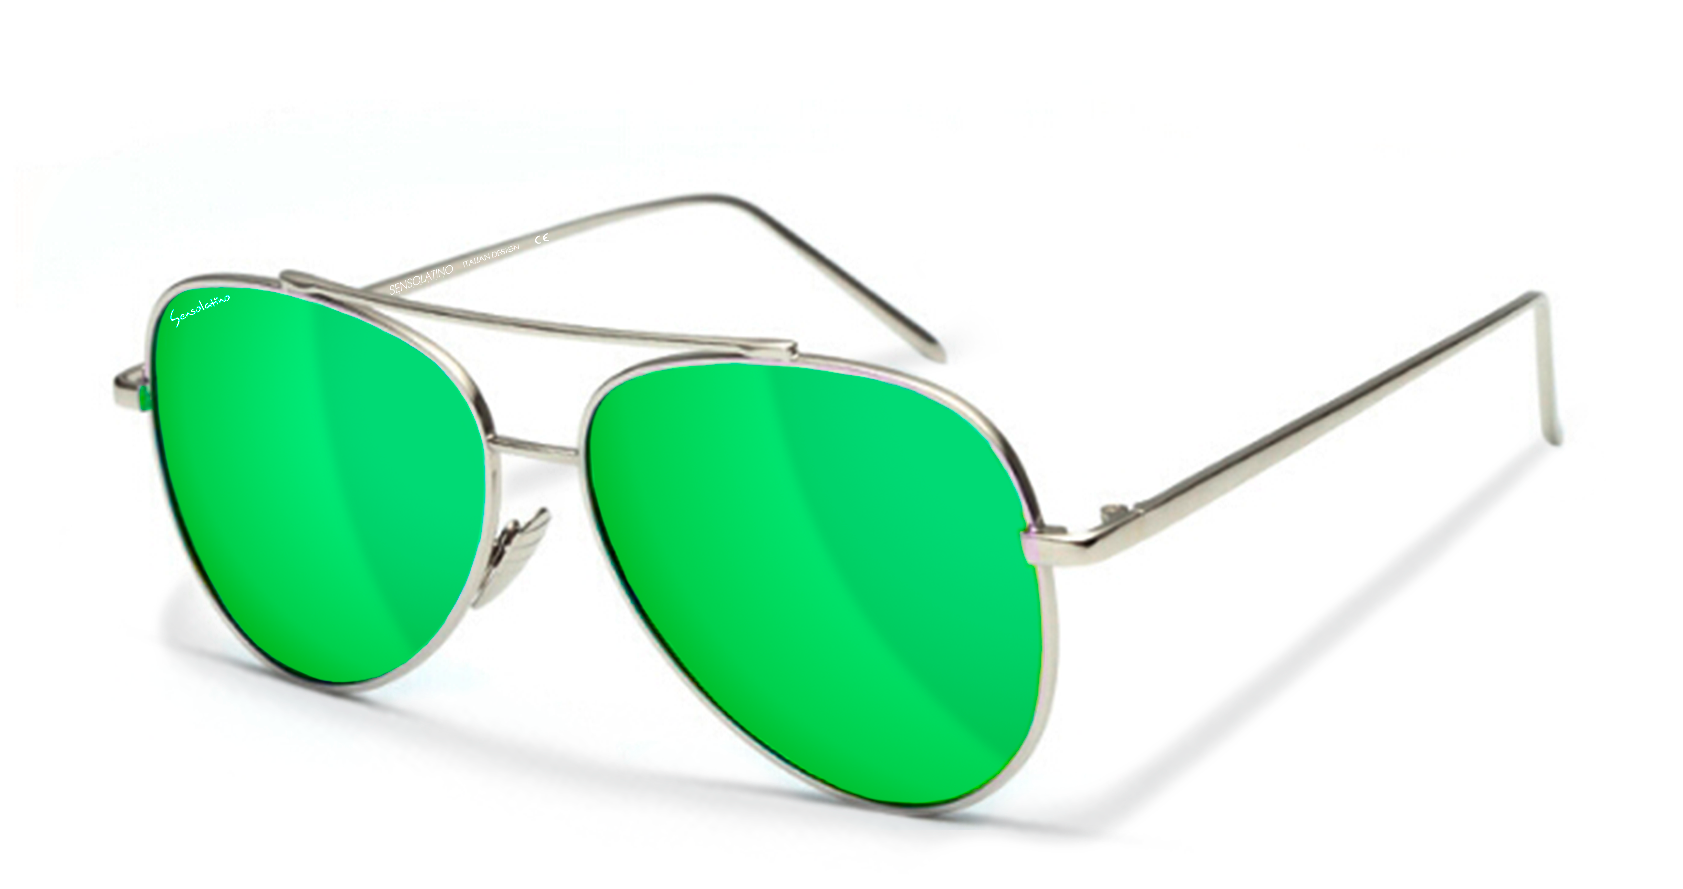 c9ae2b74883bc AVIANO LARGE WITH GREEN POLARIZED LENSES